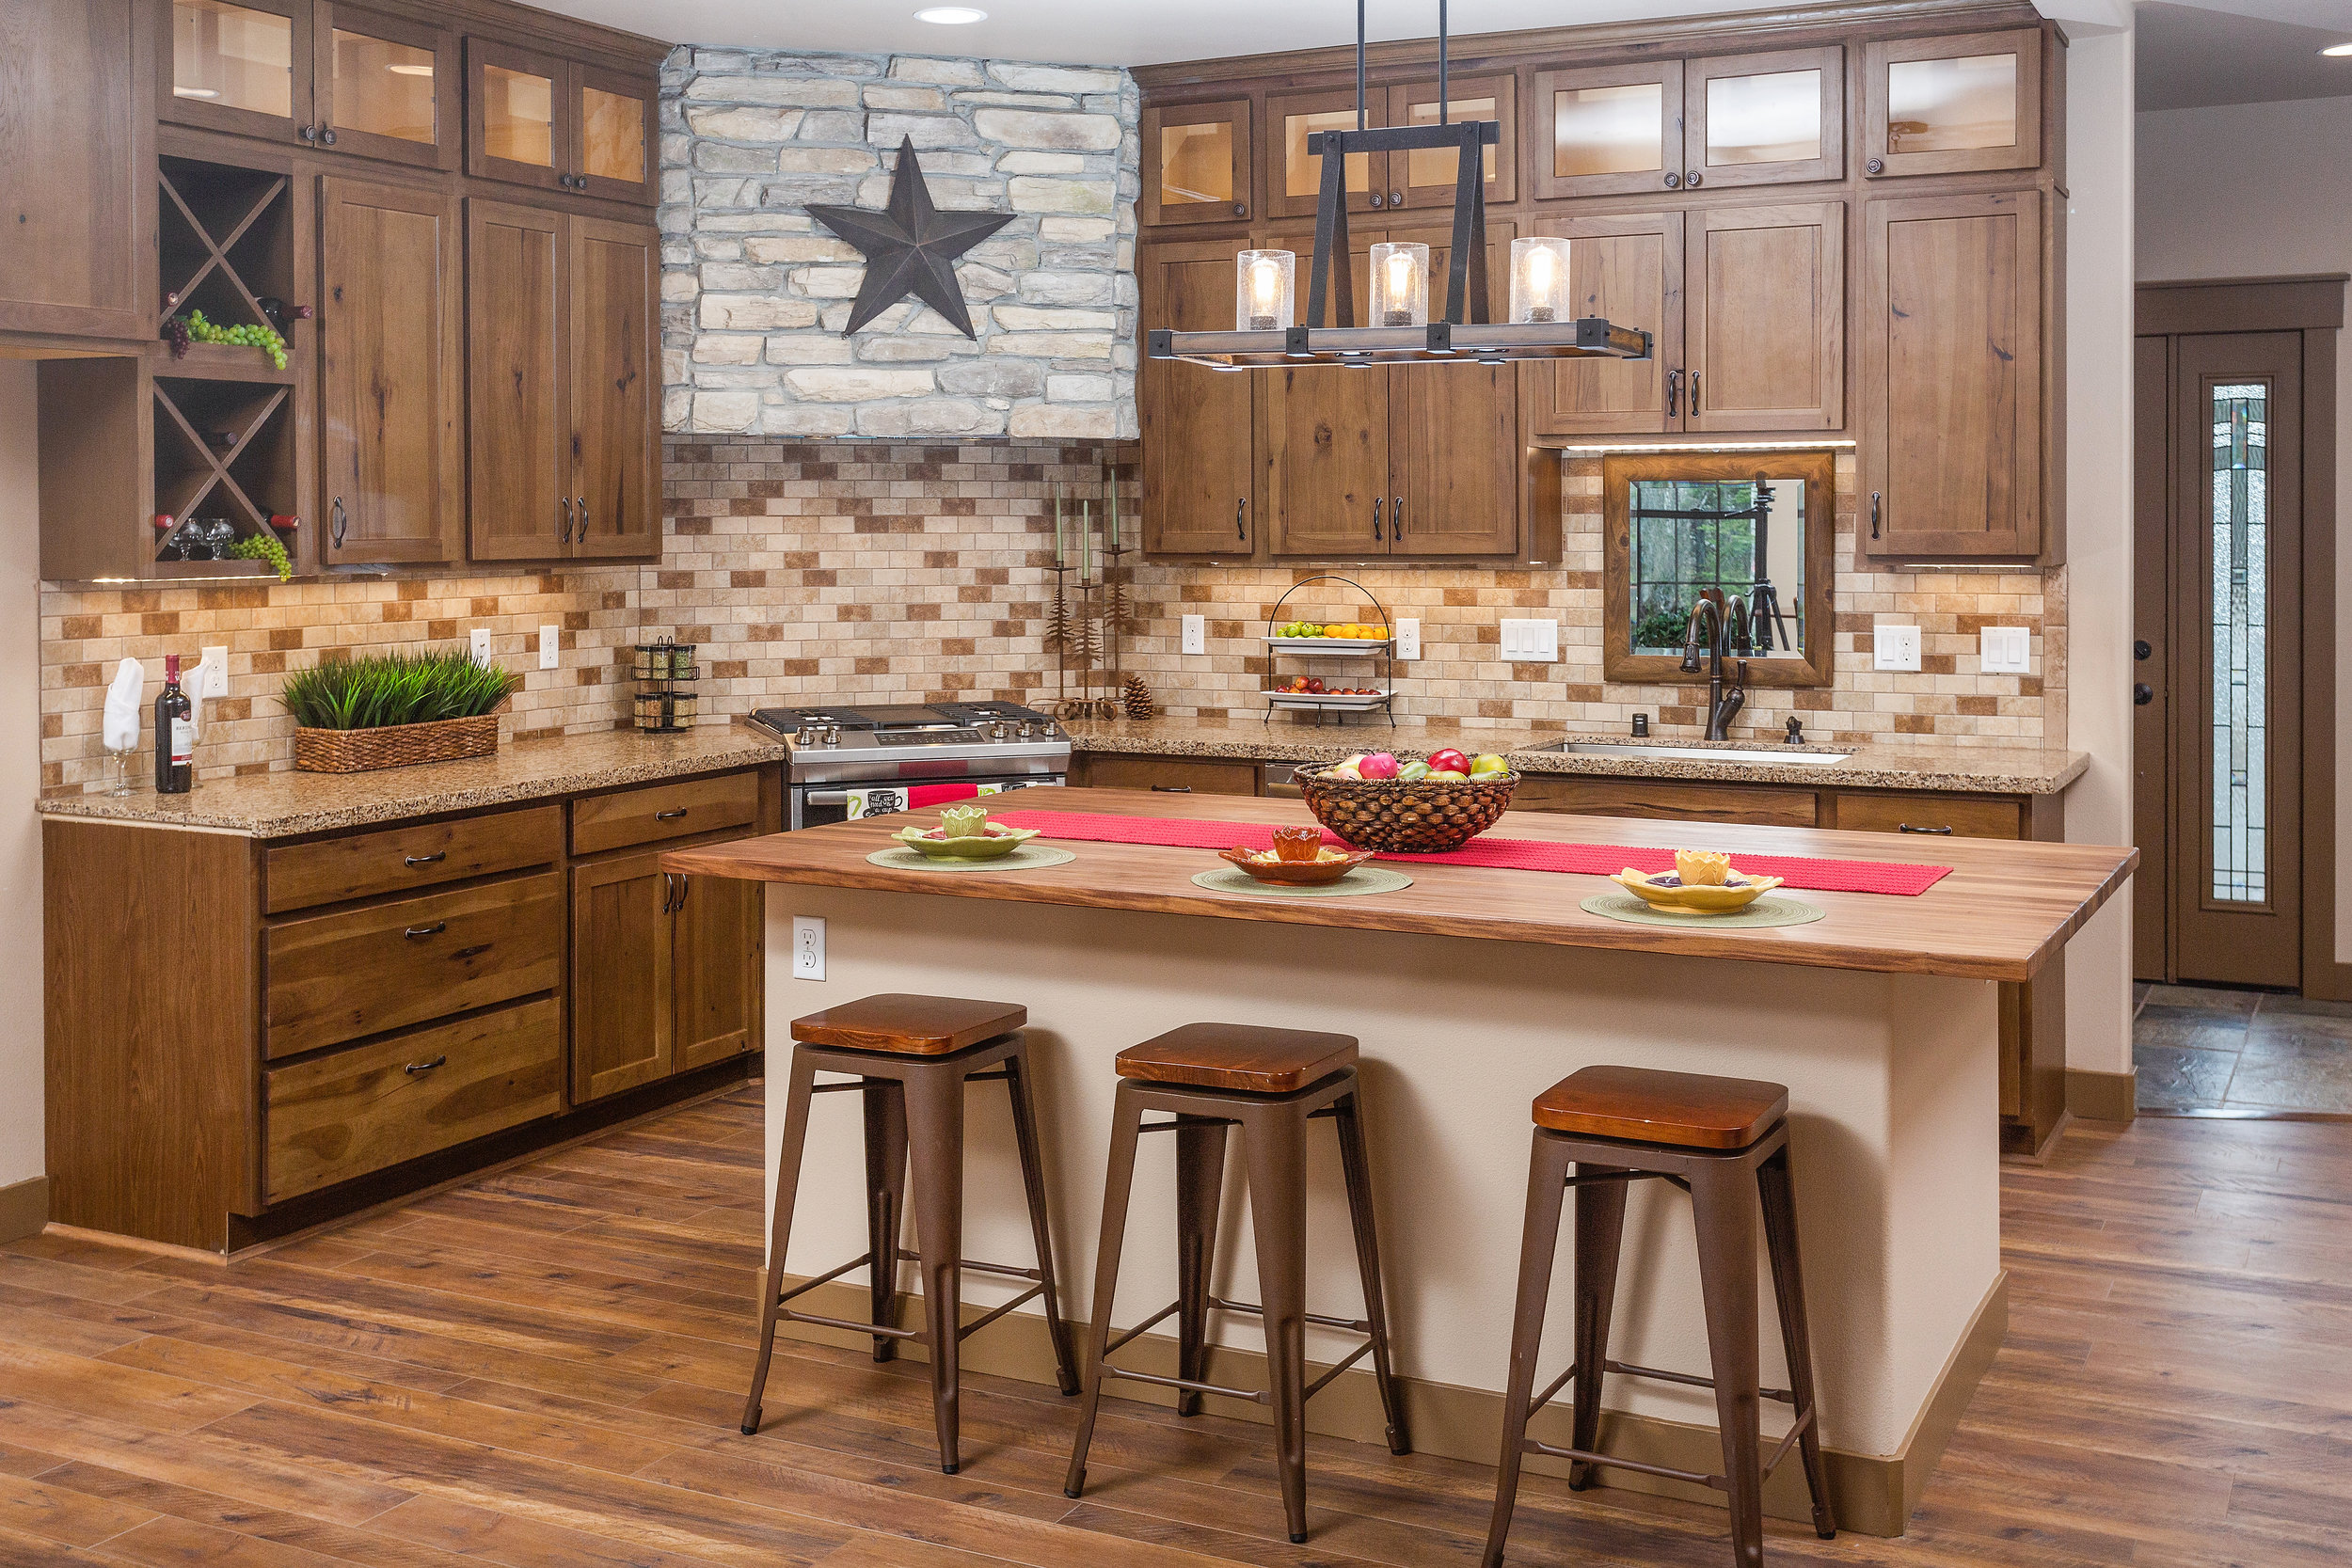 Kitchen_DMD_1631-FULL.jpg